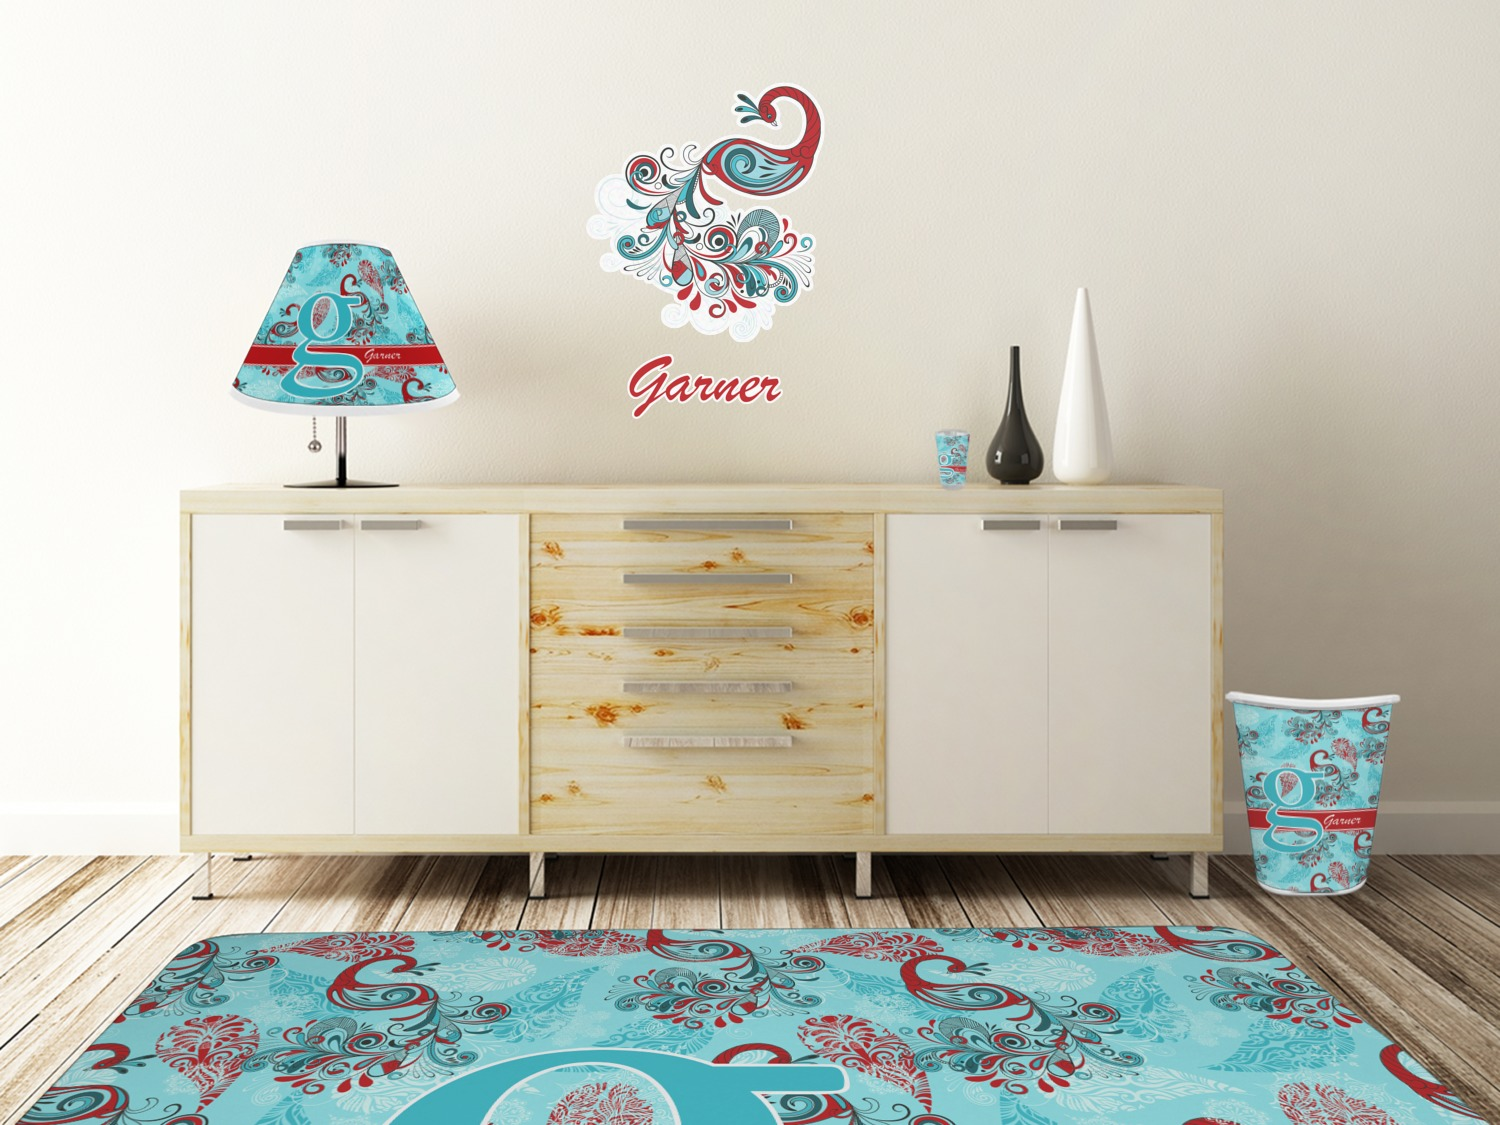 ... Peacock Wall Graphic Decal Wooden Desk